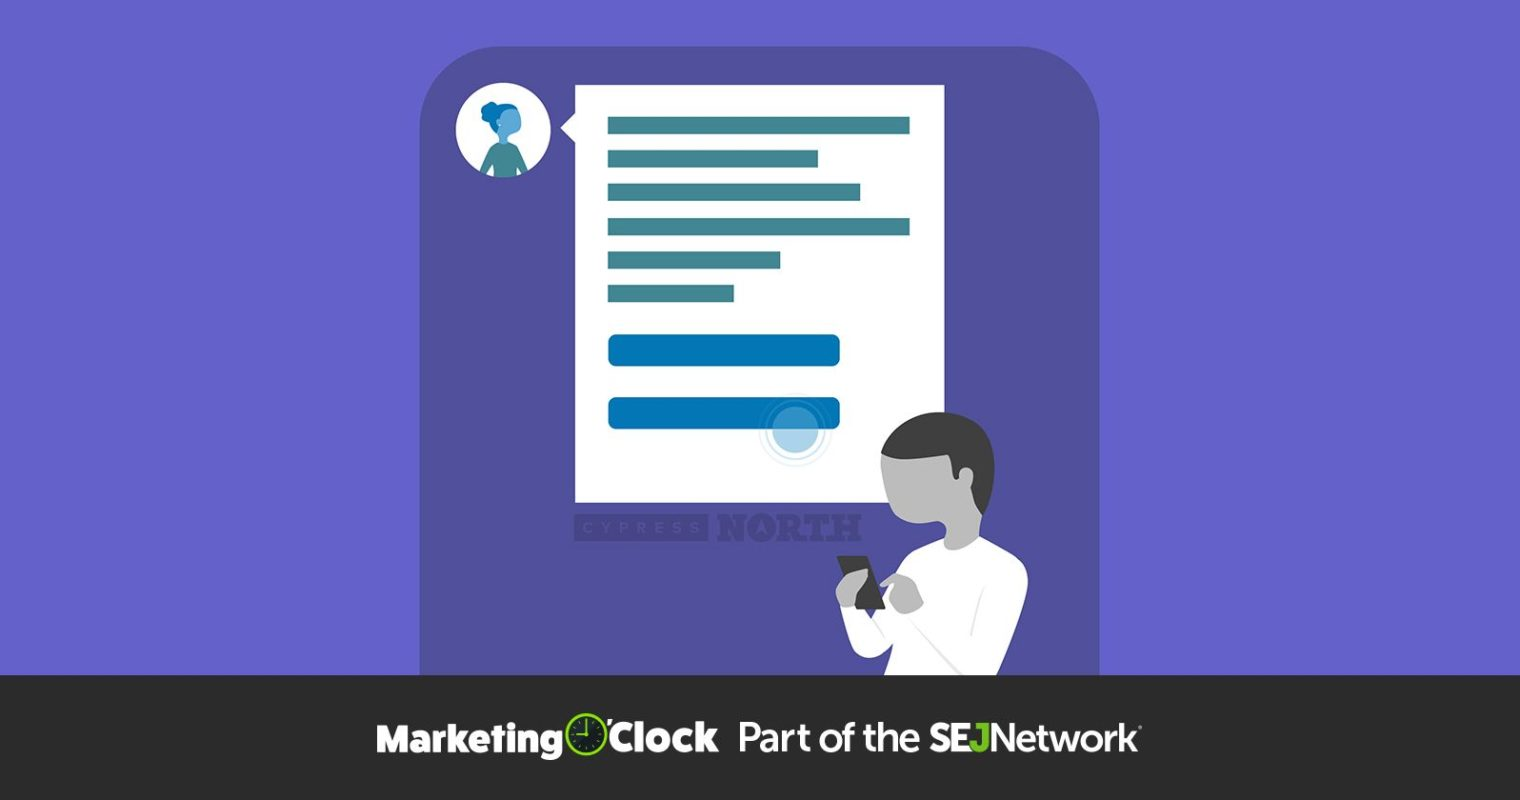 LinkedIn's New Ad Unit & This Week's Digital Marketing News [PODCAST]